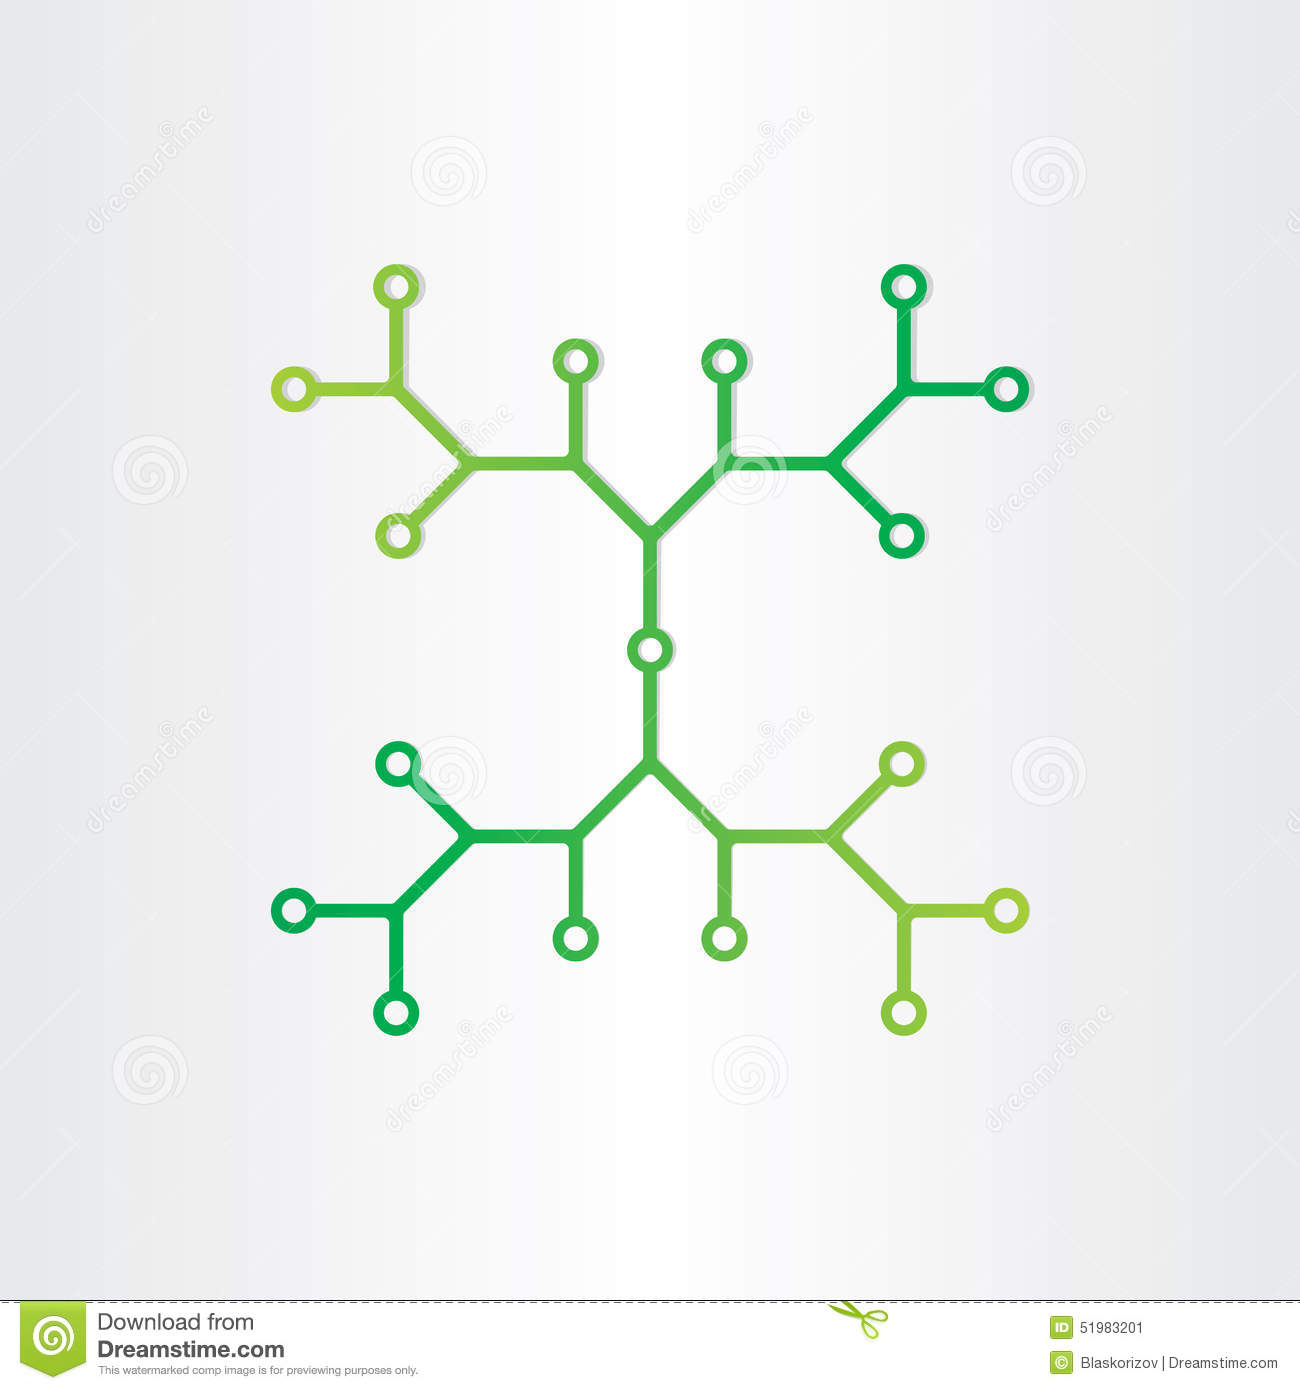 organic chemistry structure model abstract design stock